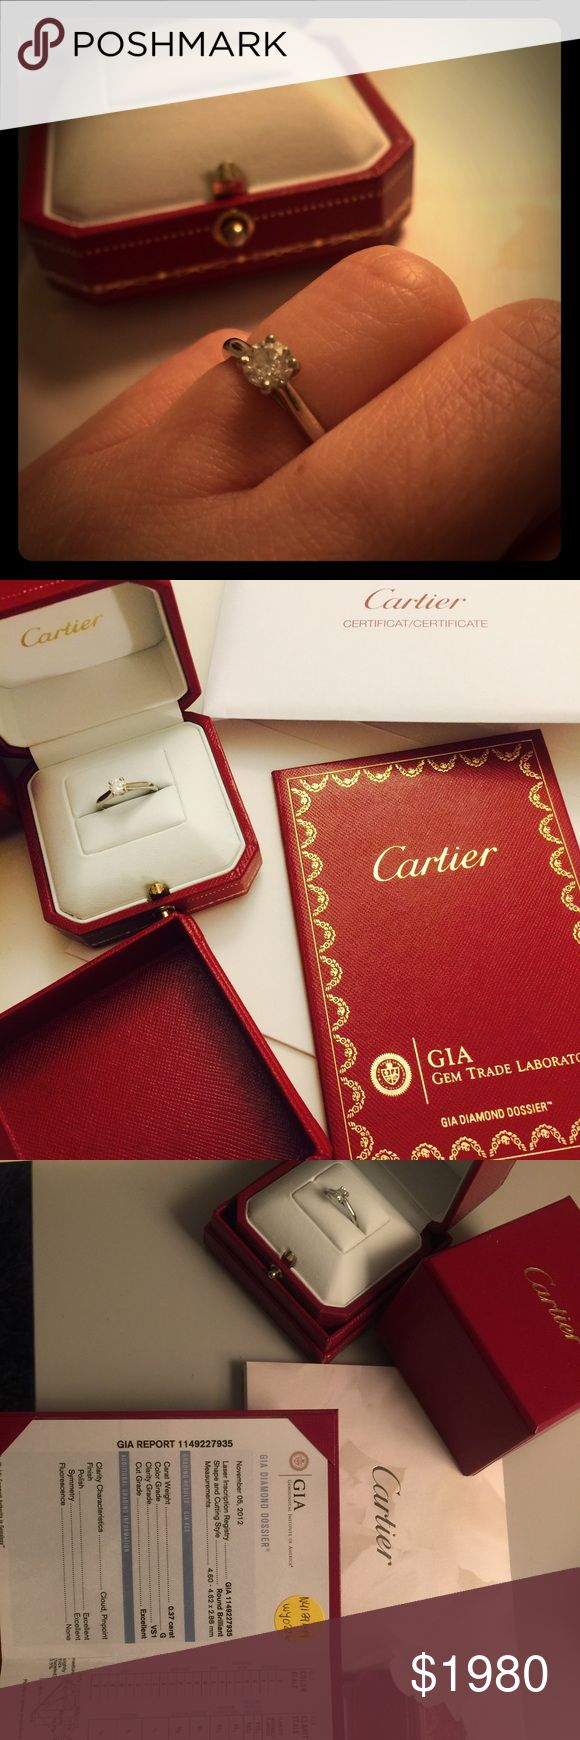 Cartier authentic Solitaire Engagement Ring 0.37 carat with platinum finished, condition as brand new with GIA, Certificate and original receipt purchased price $3644. Cartier Jewelry Rings